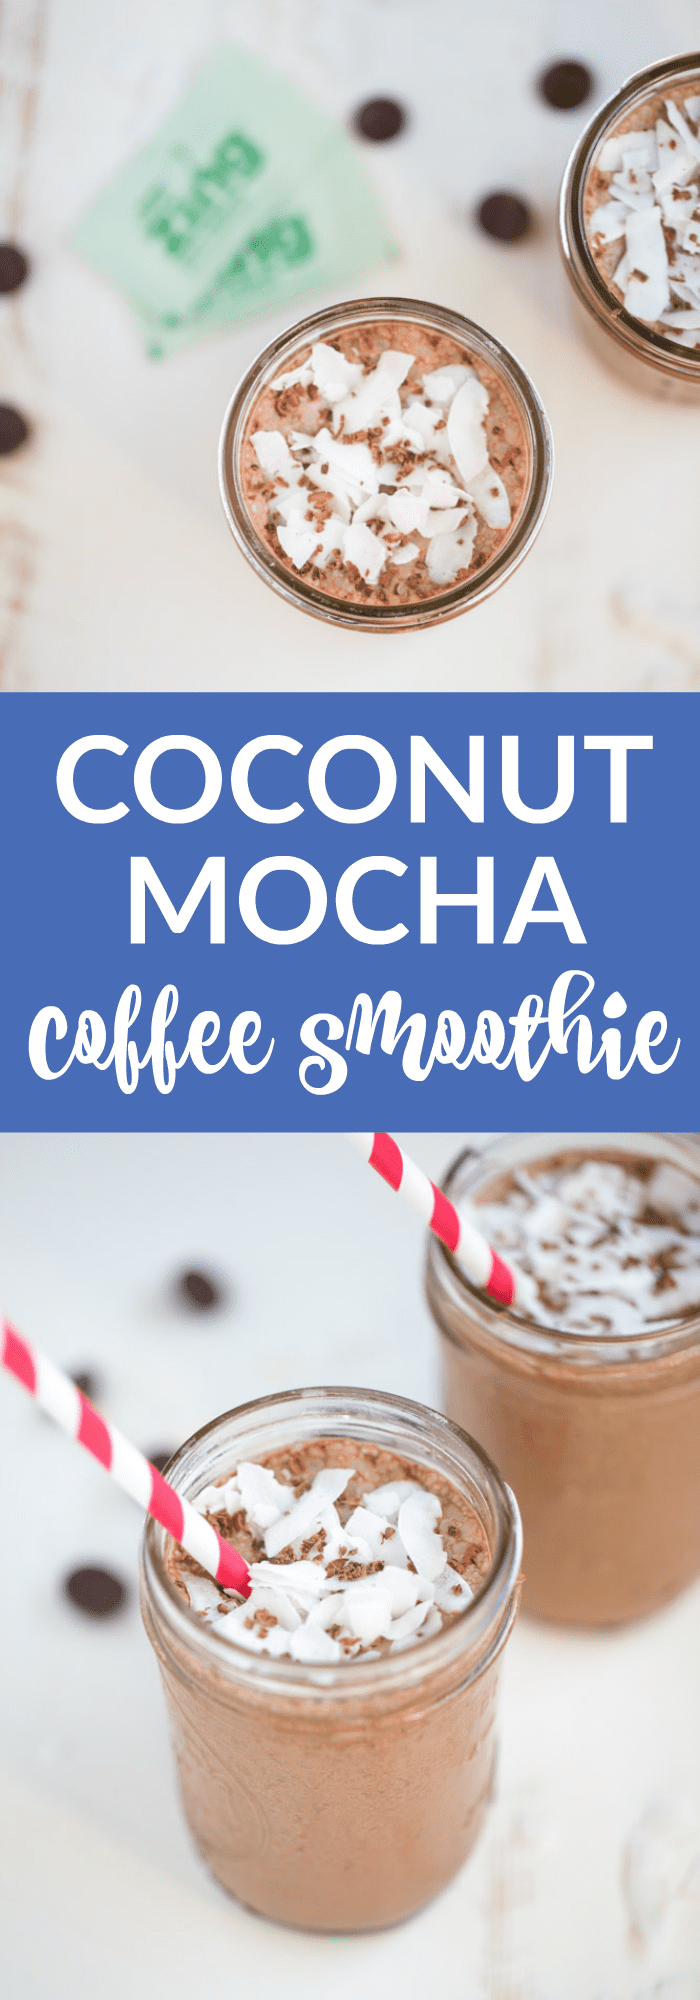 Coconut Mocha Coffee Smoothie